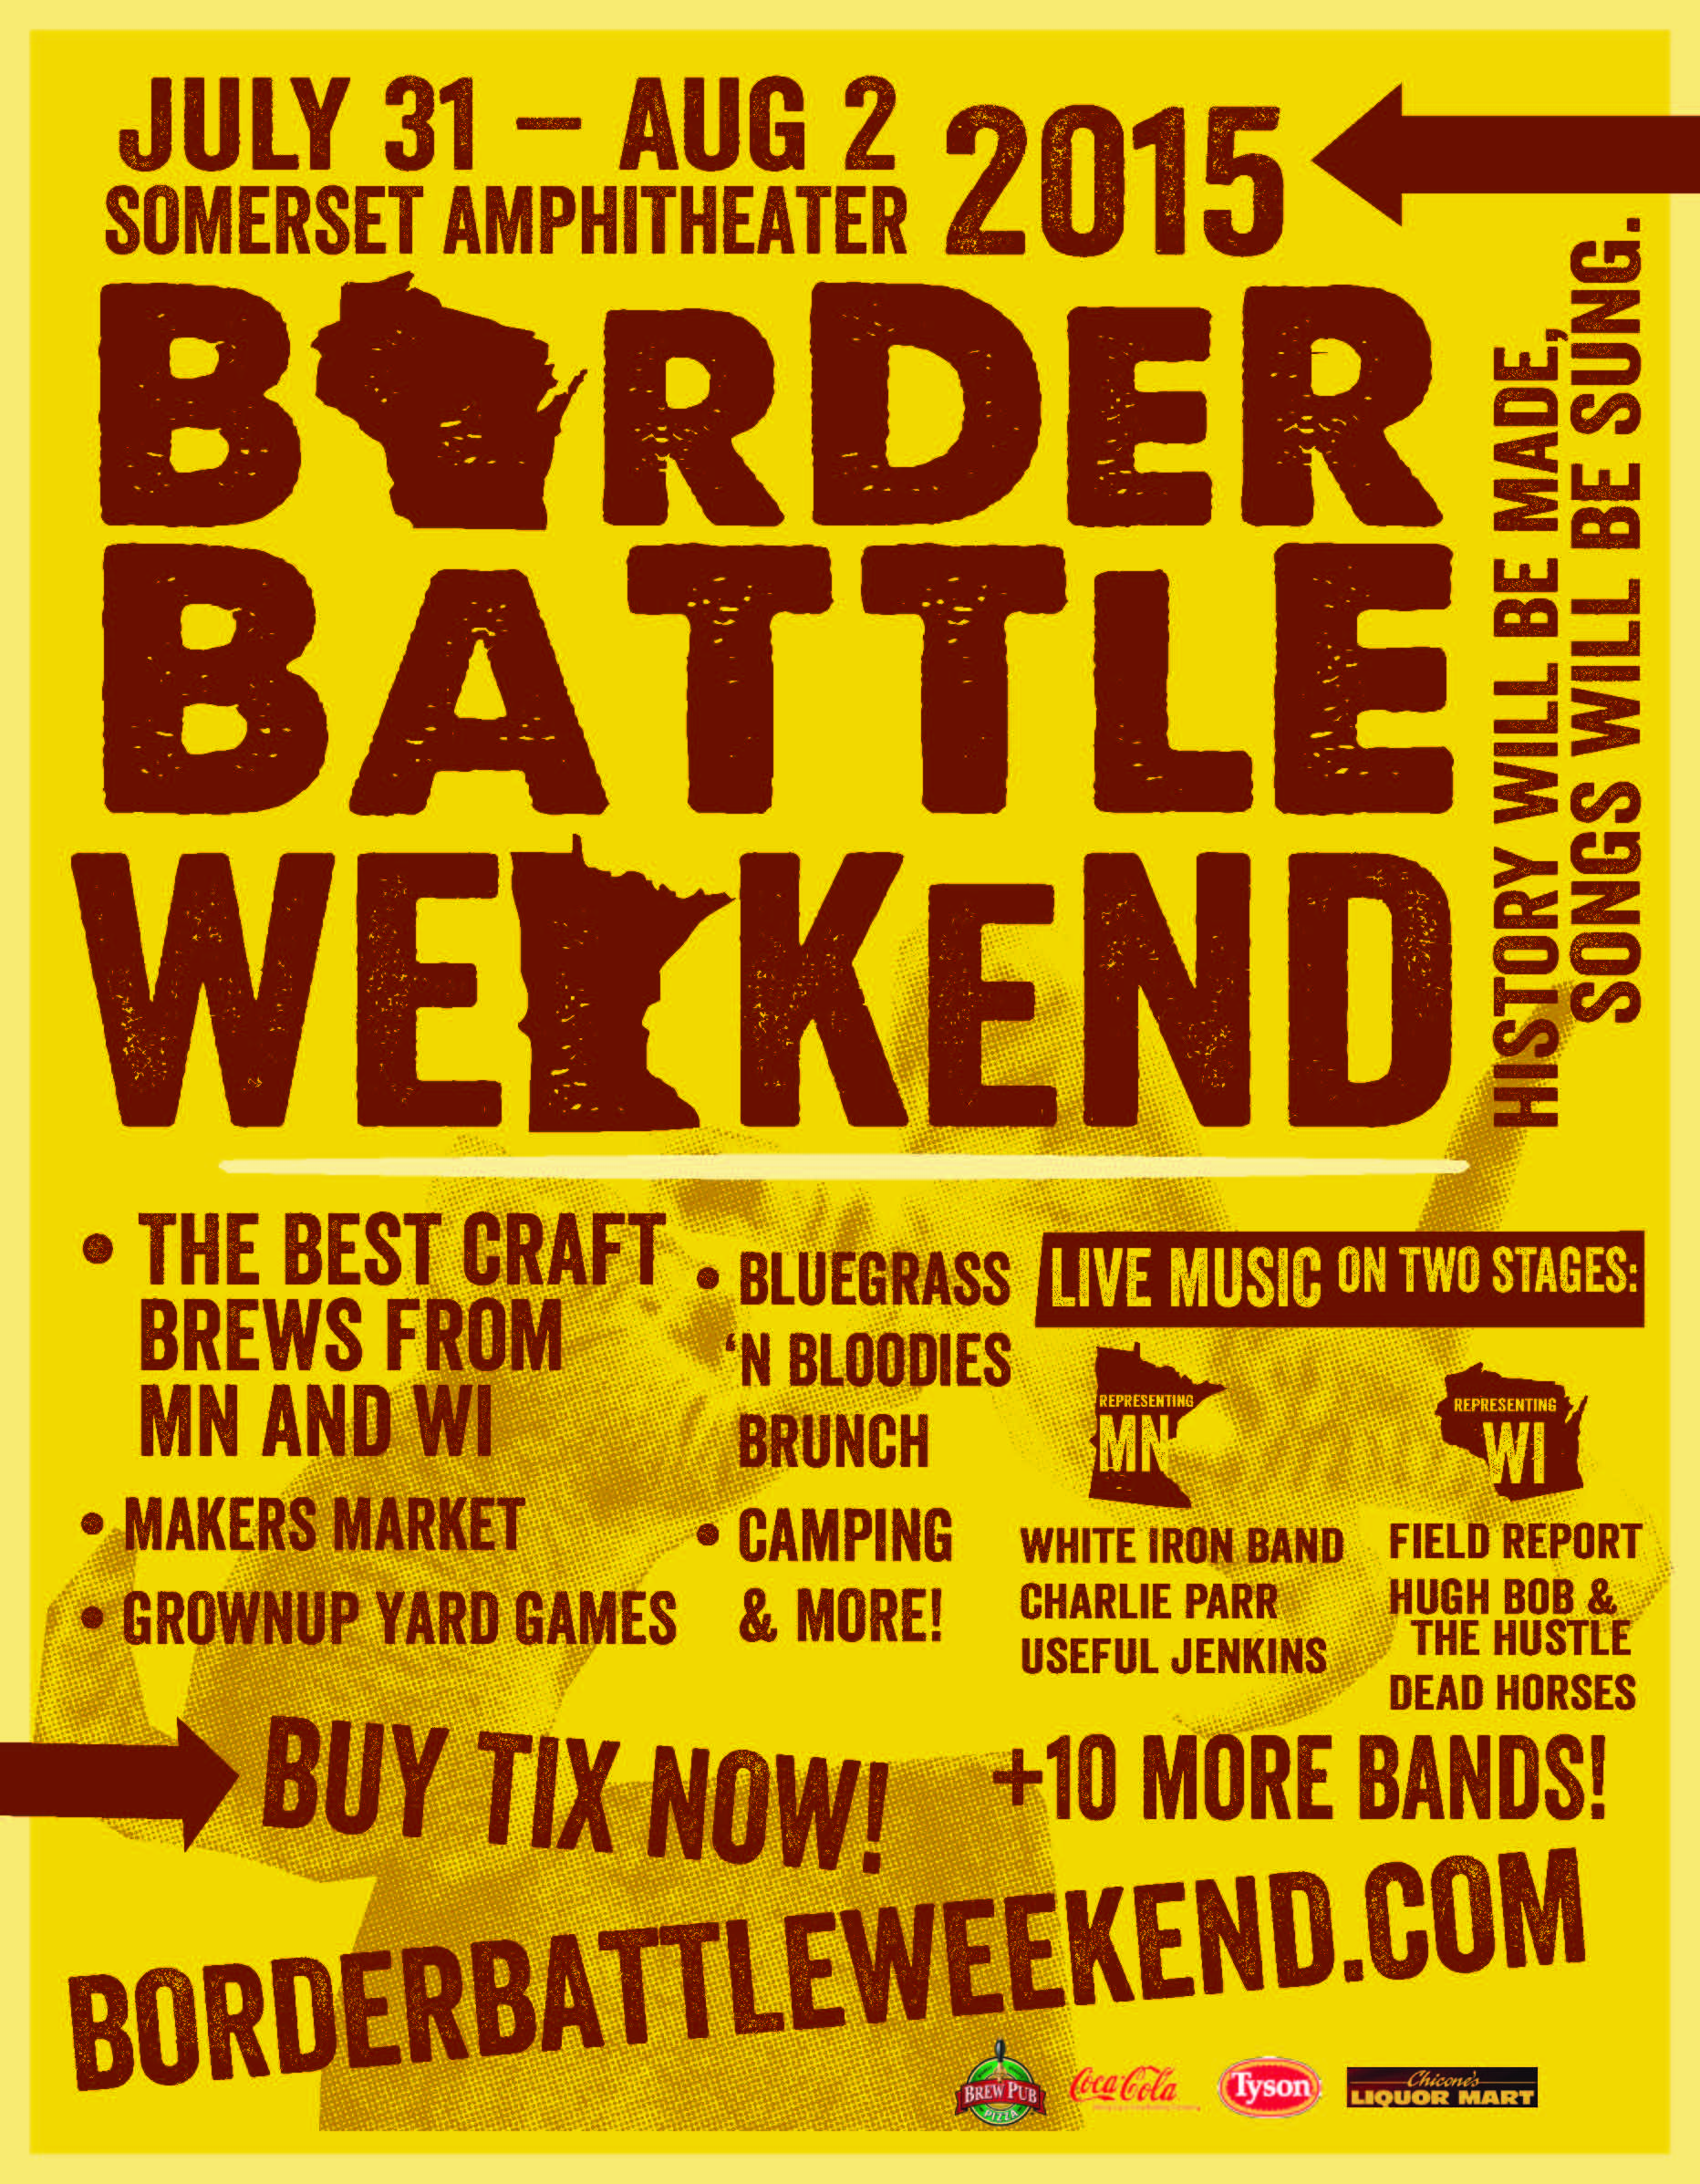 Somerset WI - In a light-hearted spirit of competition, I worked with the Somerset Amphitheater to create a Border Battle Weekend on its newly improved festival grounds. The event included a very popular Border Battle Beer Fest,two stages of live music, a Makers Market, grownup yard games, fine Midwestern food and a lot of fun with the MN vs. WI theme.